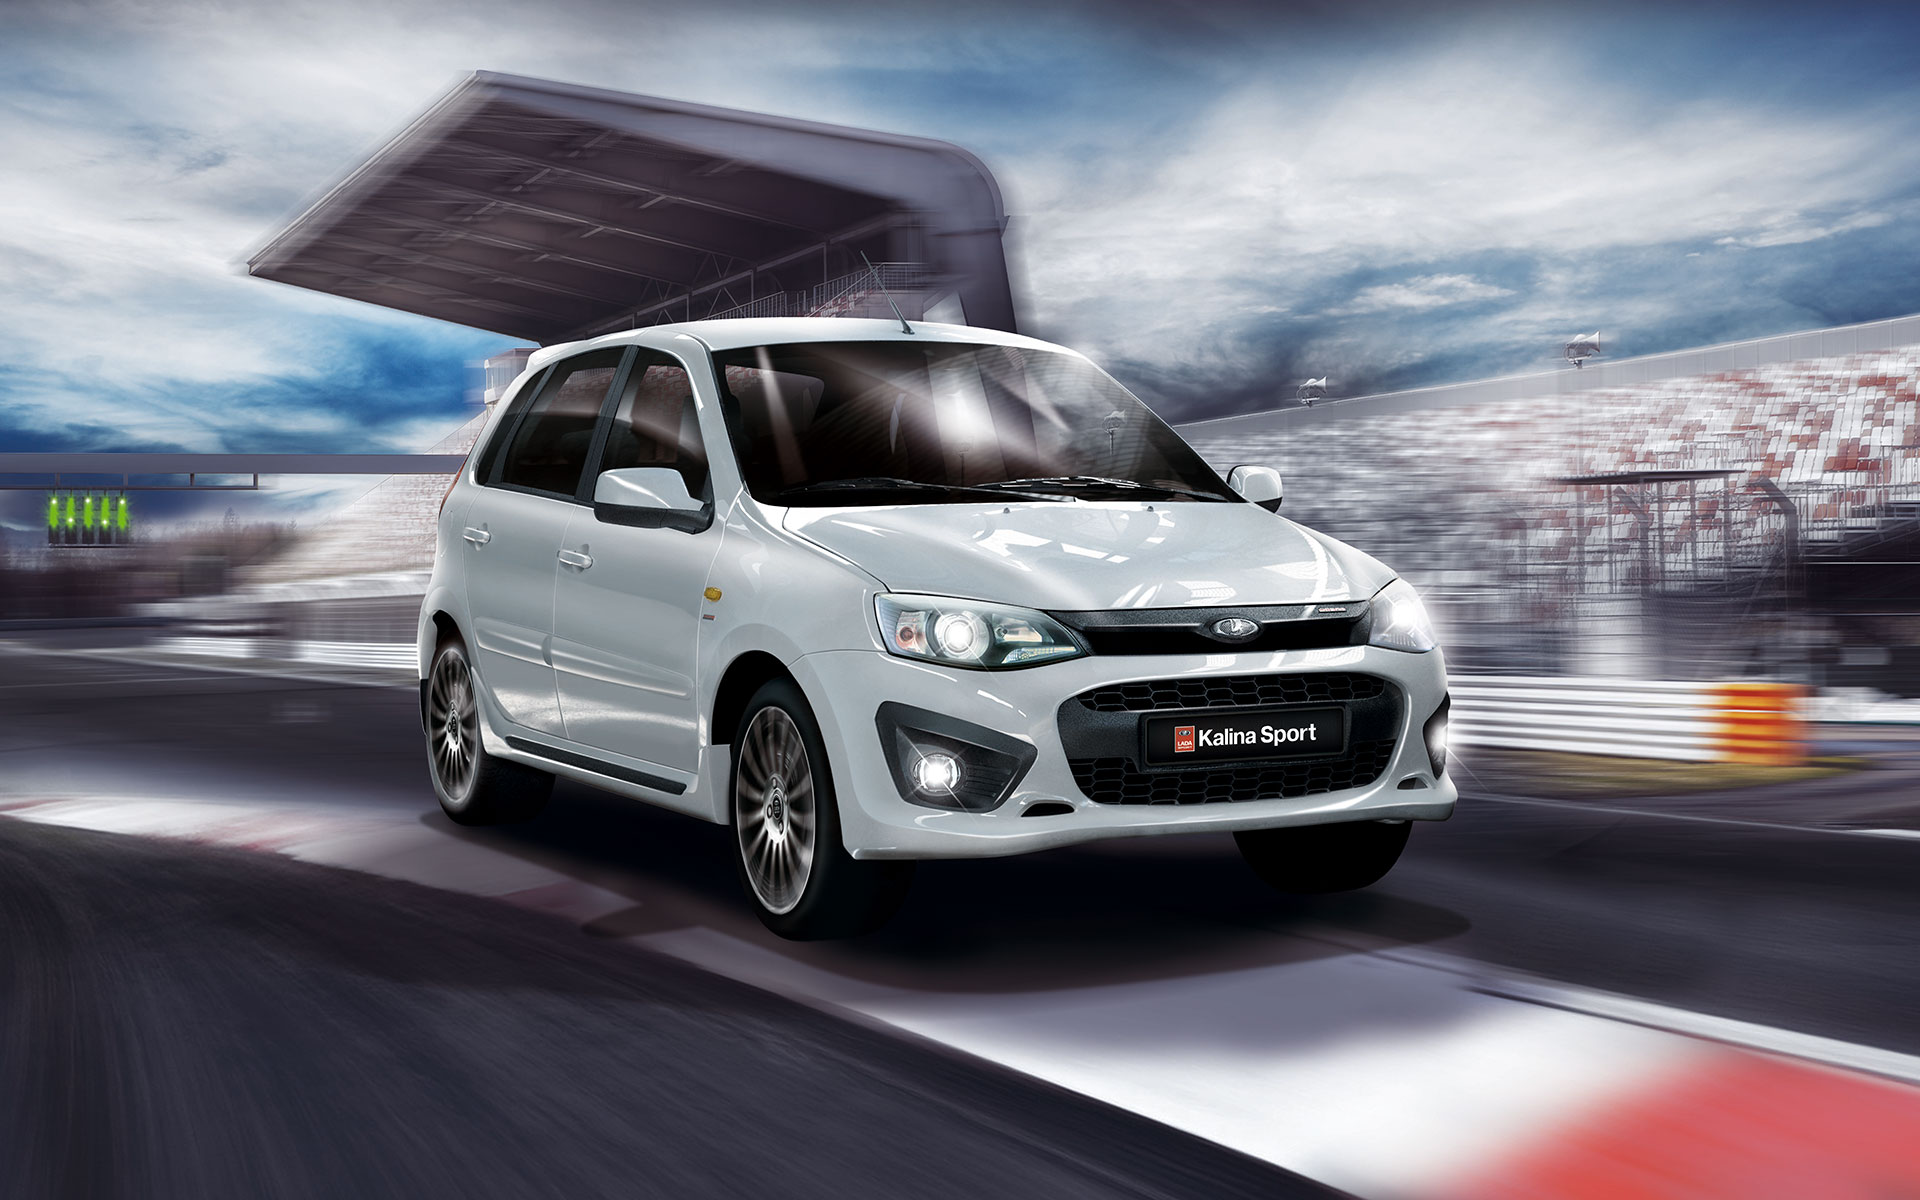 Lada Kalina hatchback: reviews of owners, price 4